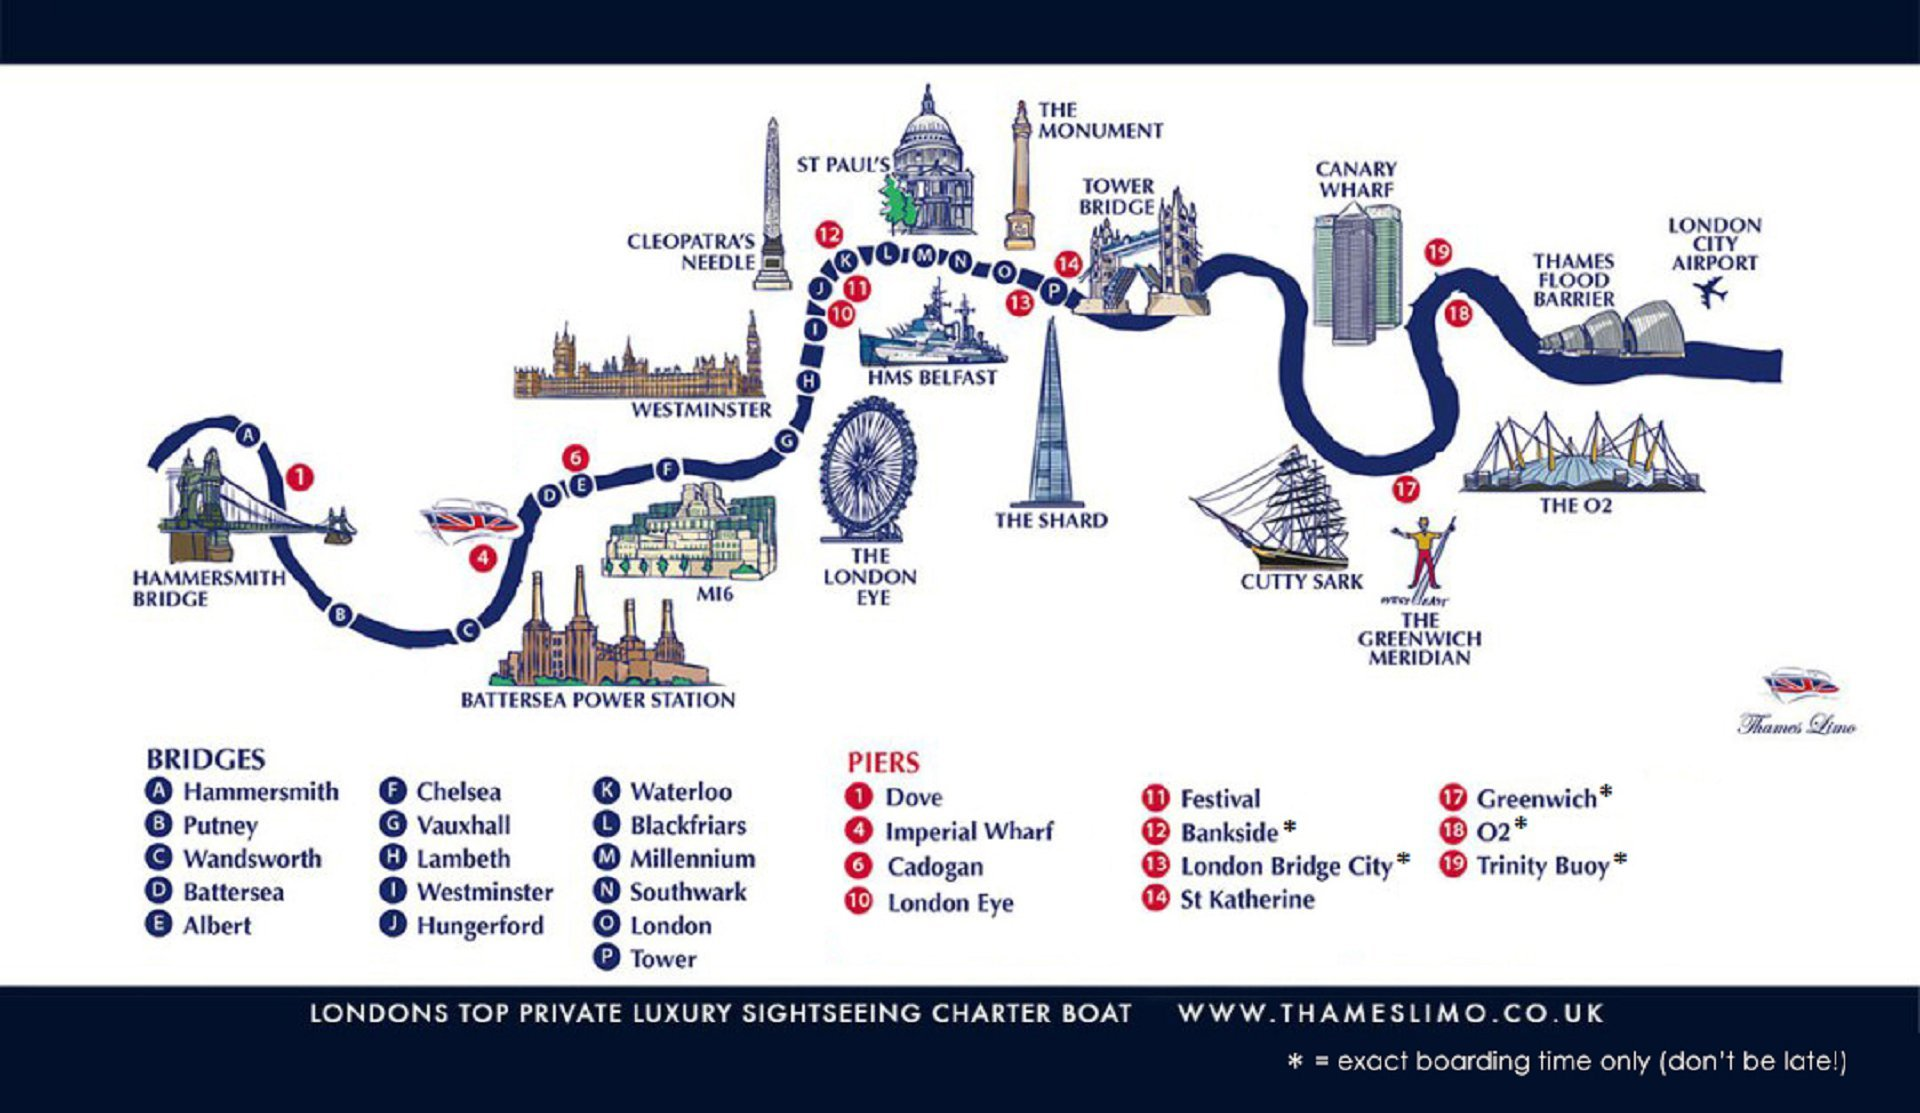 Map: Thames Limo drop off and pick up points on the River Thames for a London wedding or engagement